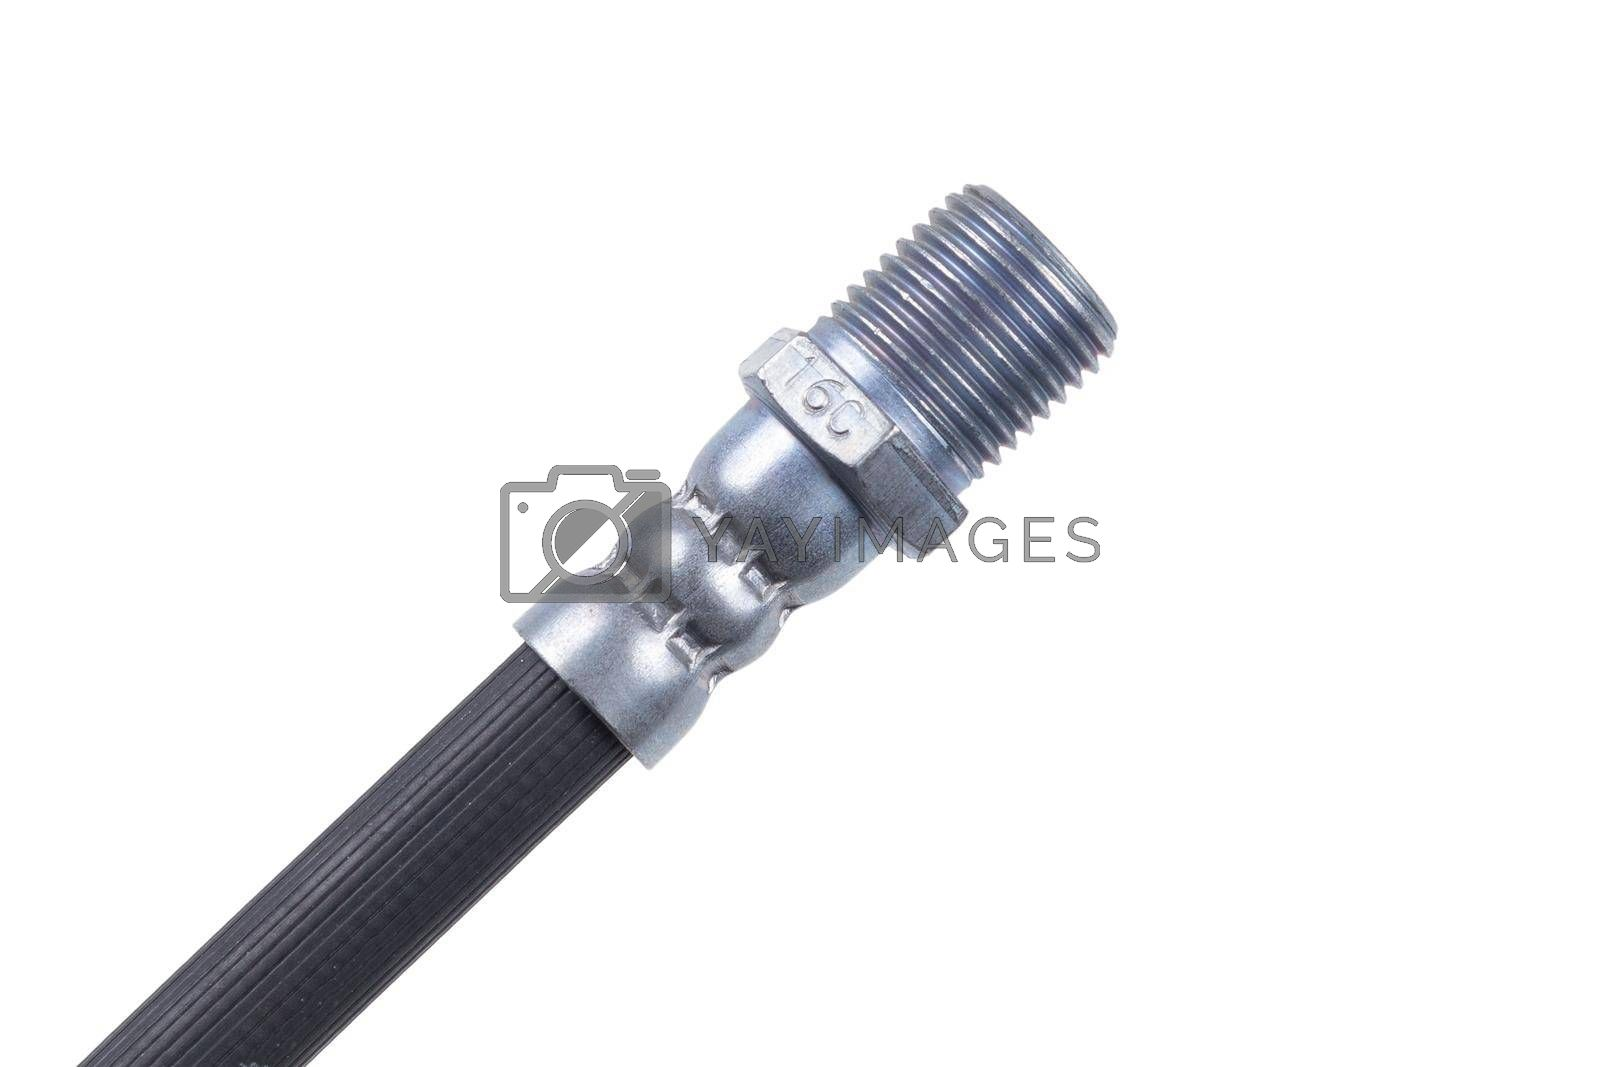 Brake hose for a car on a white background